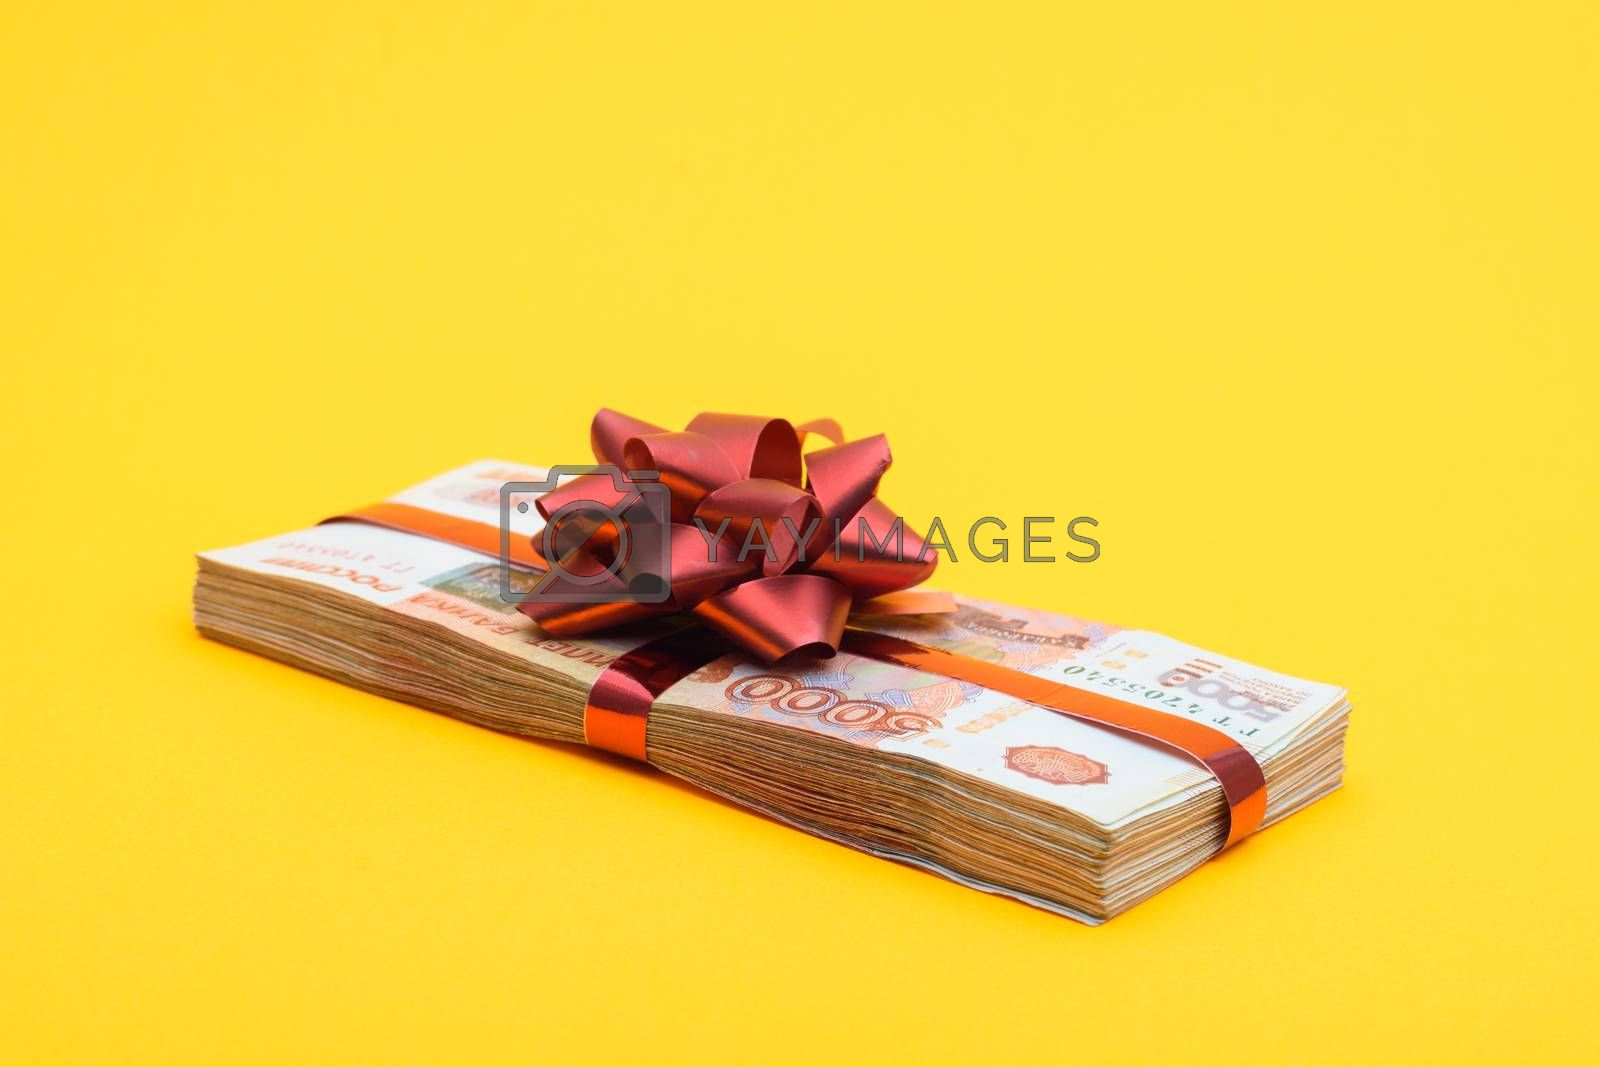 On a yellow background lies a gift pack of five thousandth Russian bills